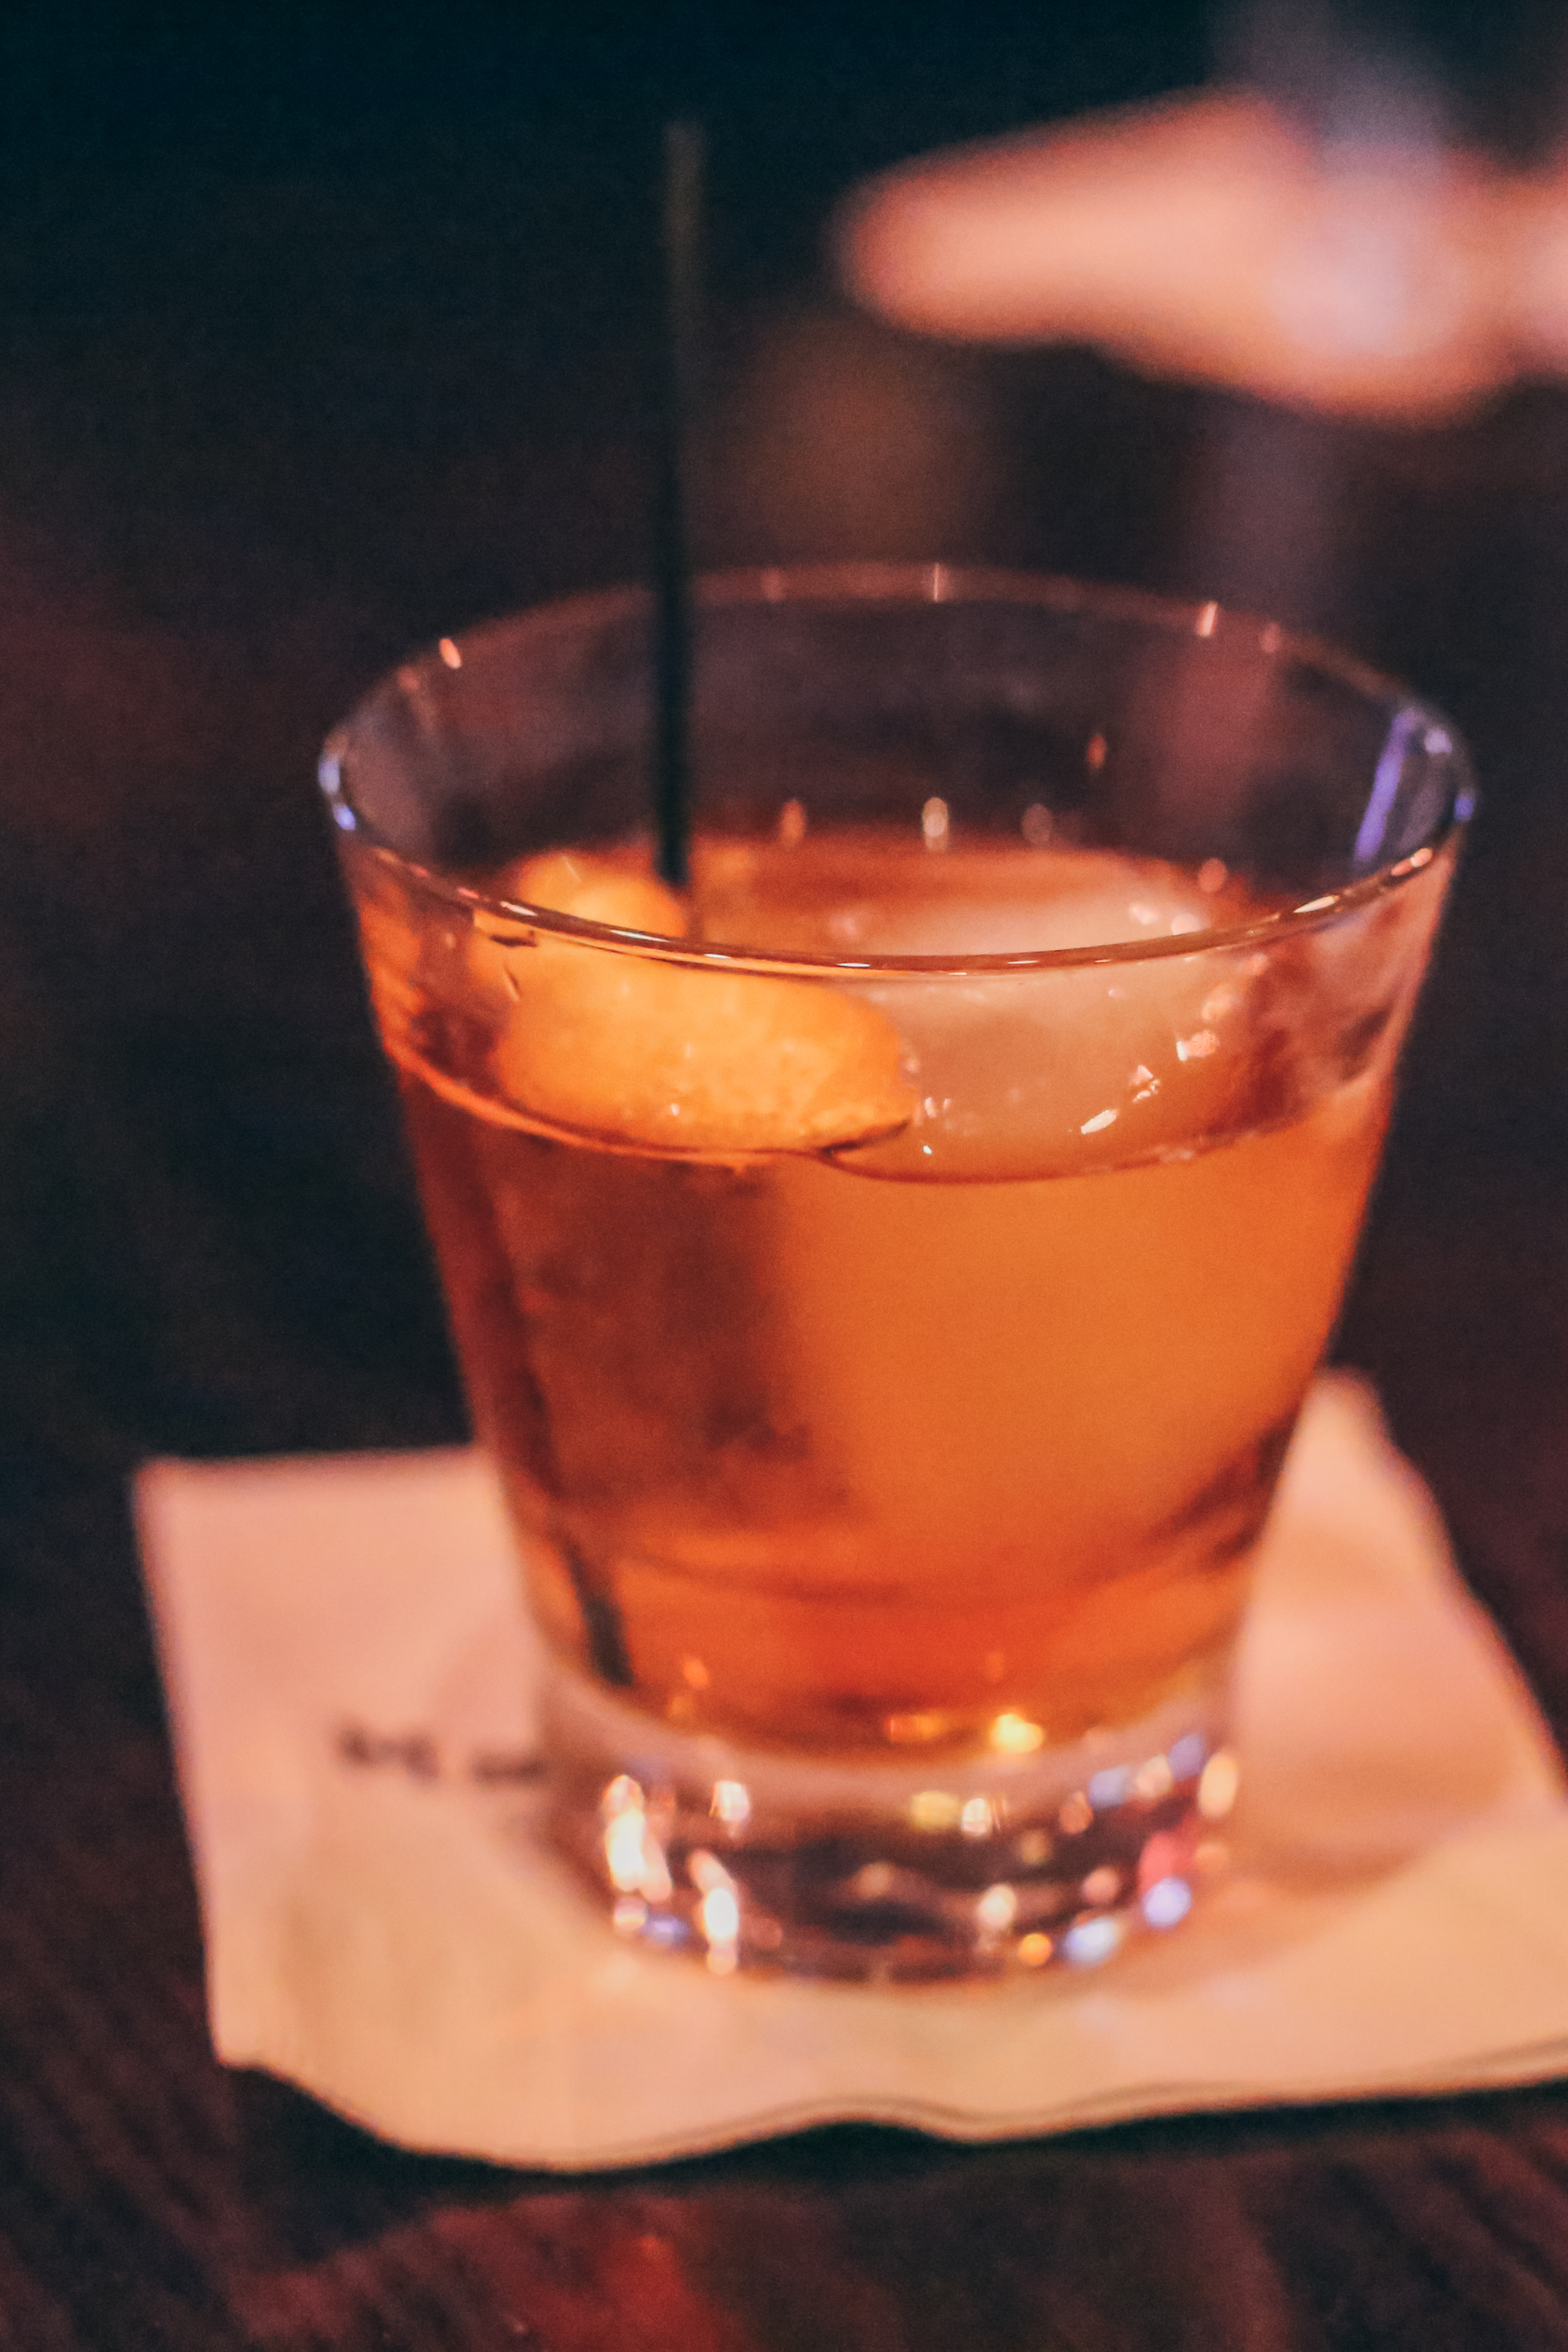 Barrel-Aged Scrappy Old Timer (from the regular menu):Old Forester, Suze Aperitif, Cocchi Torino, Vermouth and Scrappy Orange Bitters